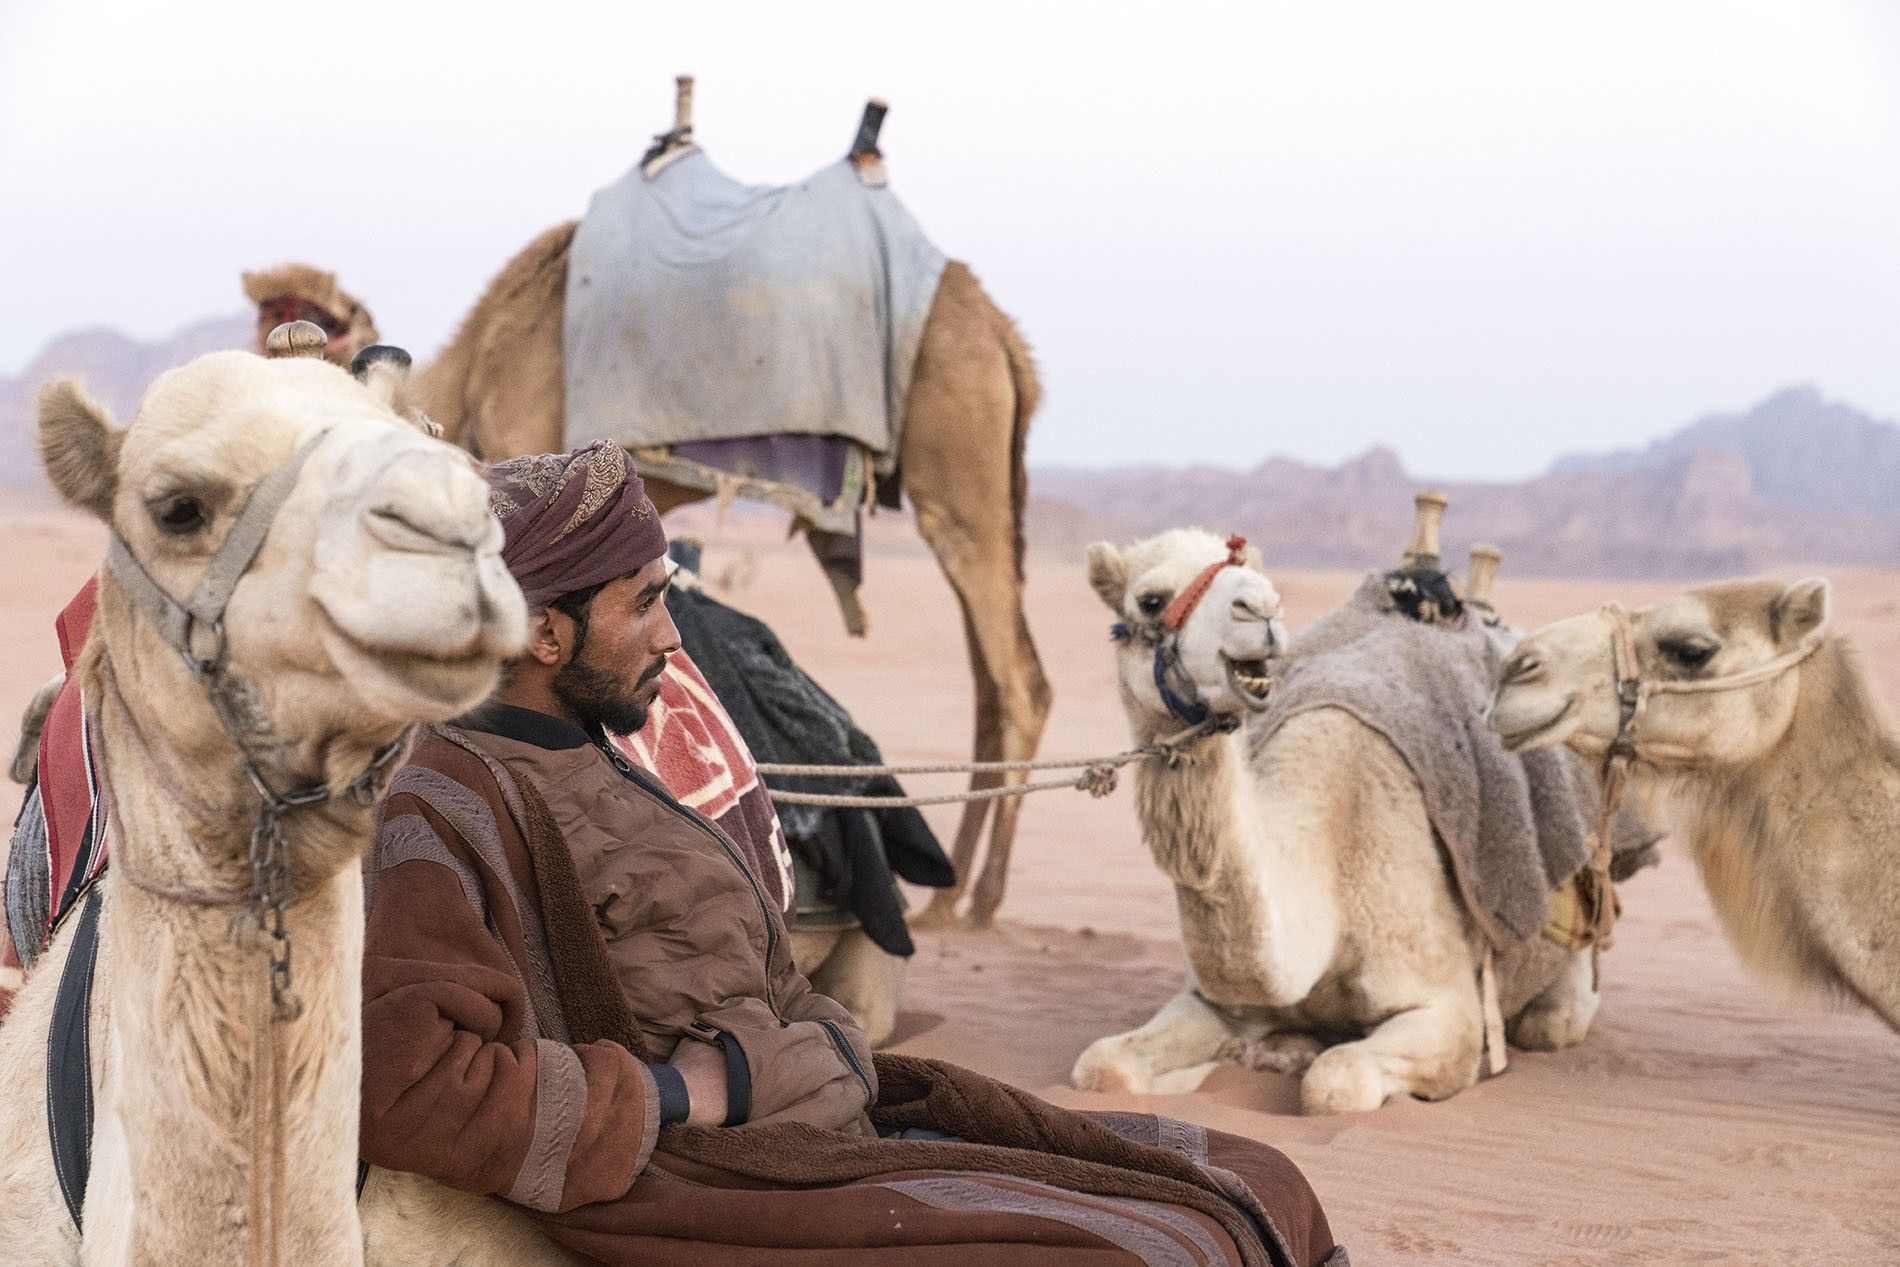 Resting with the camels.